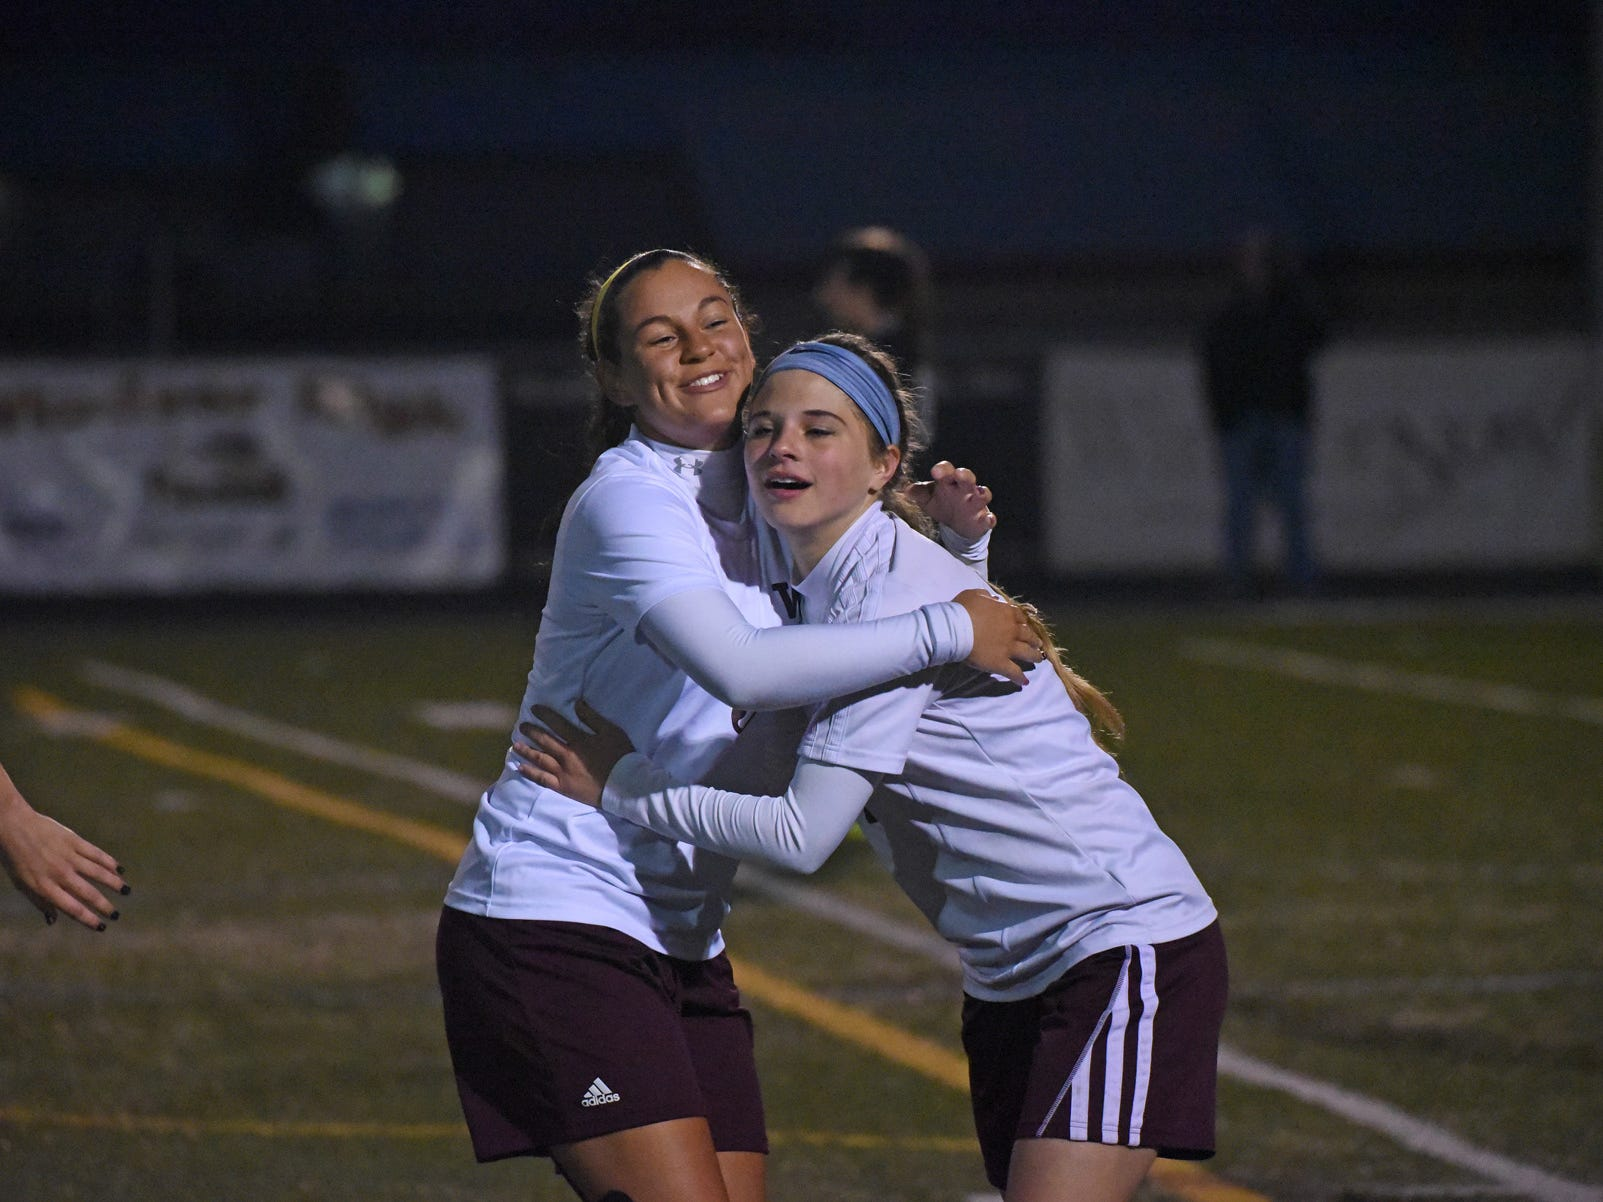 Windsor High School girls soccer players Leticia Oliva, left, and Bailey Zehr hug while celebrating a goal in a game earlier this season. The Wizards beat Battle Mountain 1-0 on Thursday to advance to the semifinals of the Class 4A state playoffs.